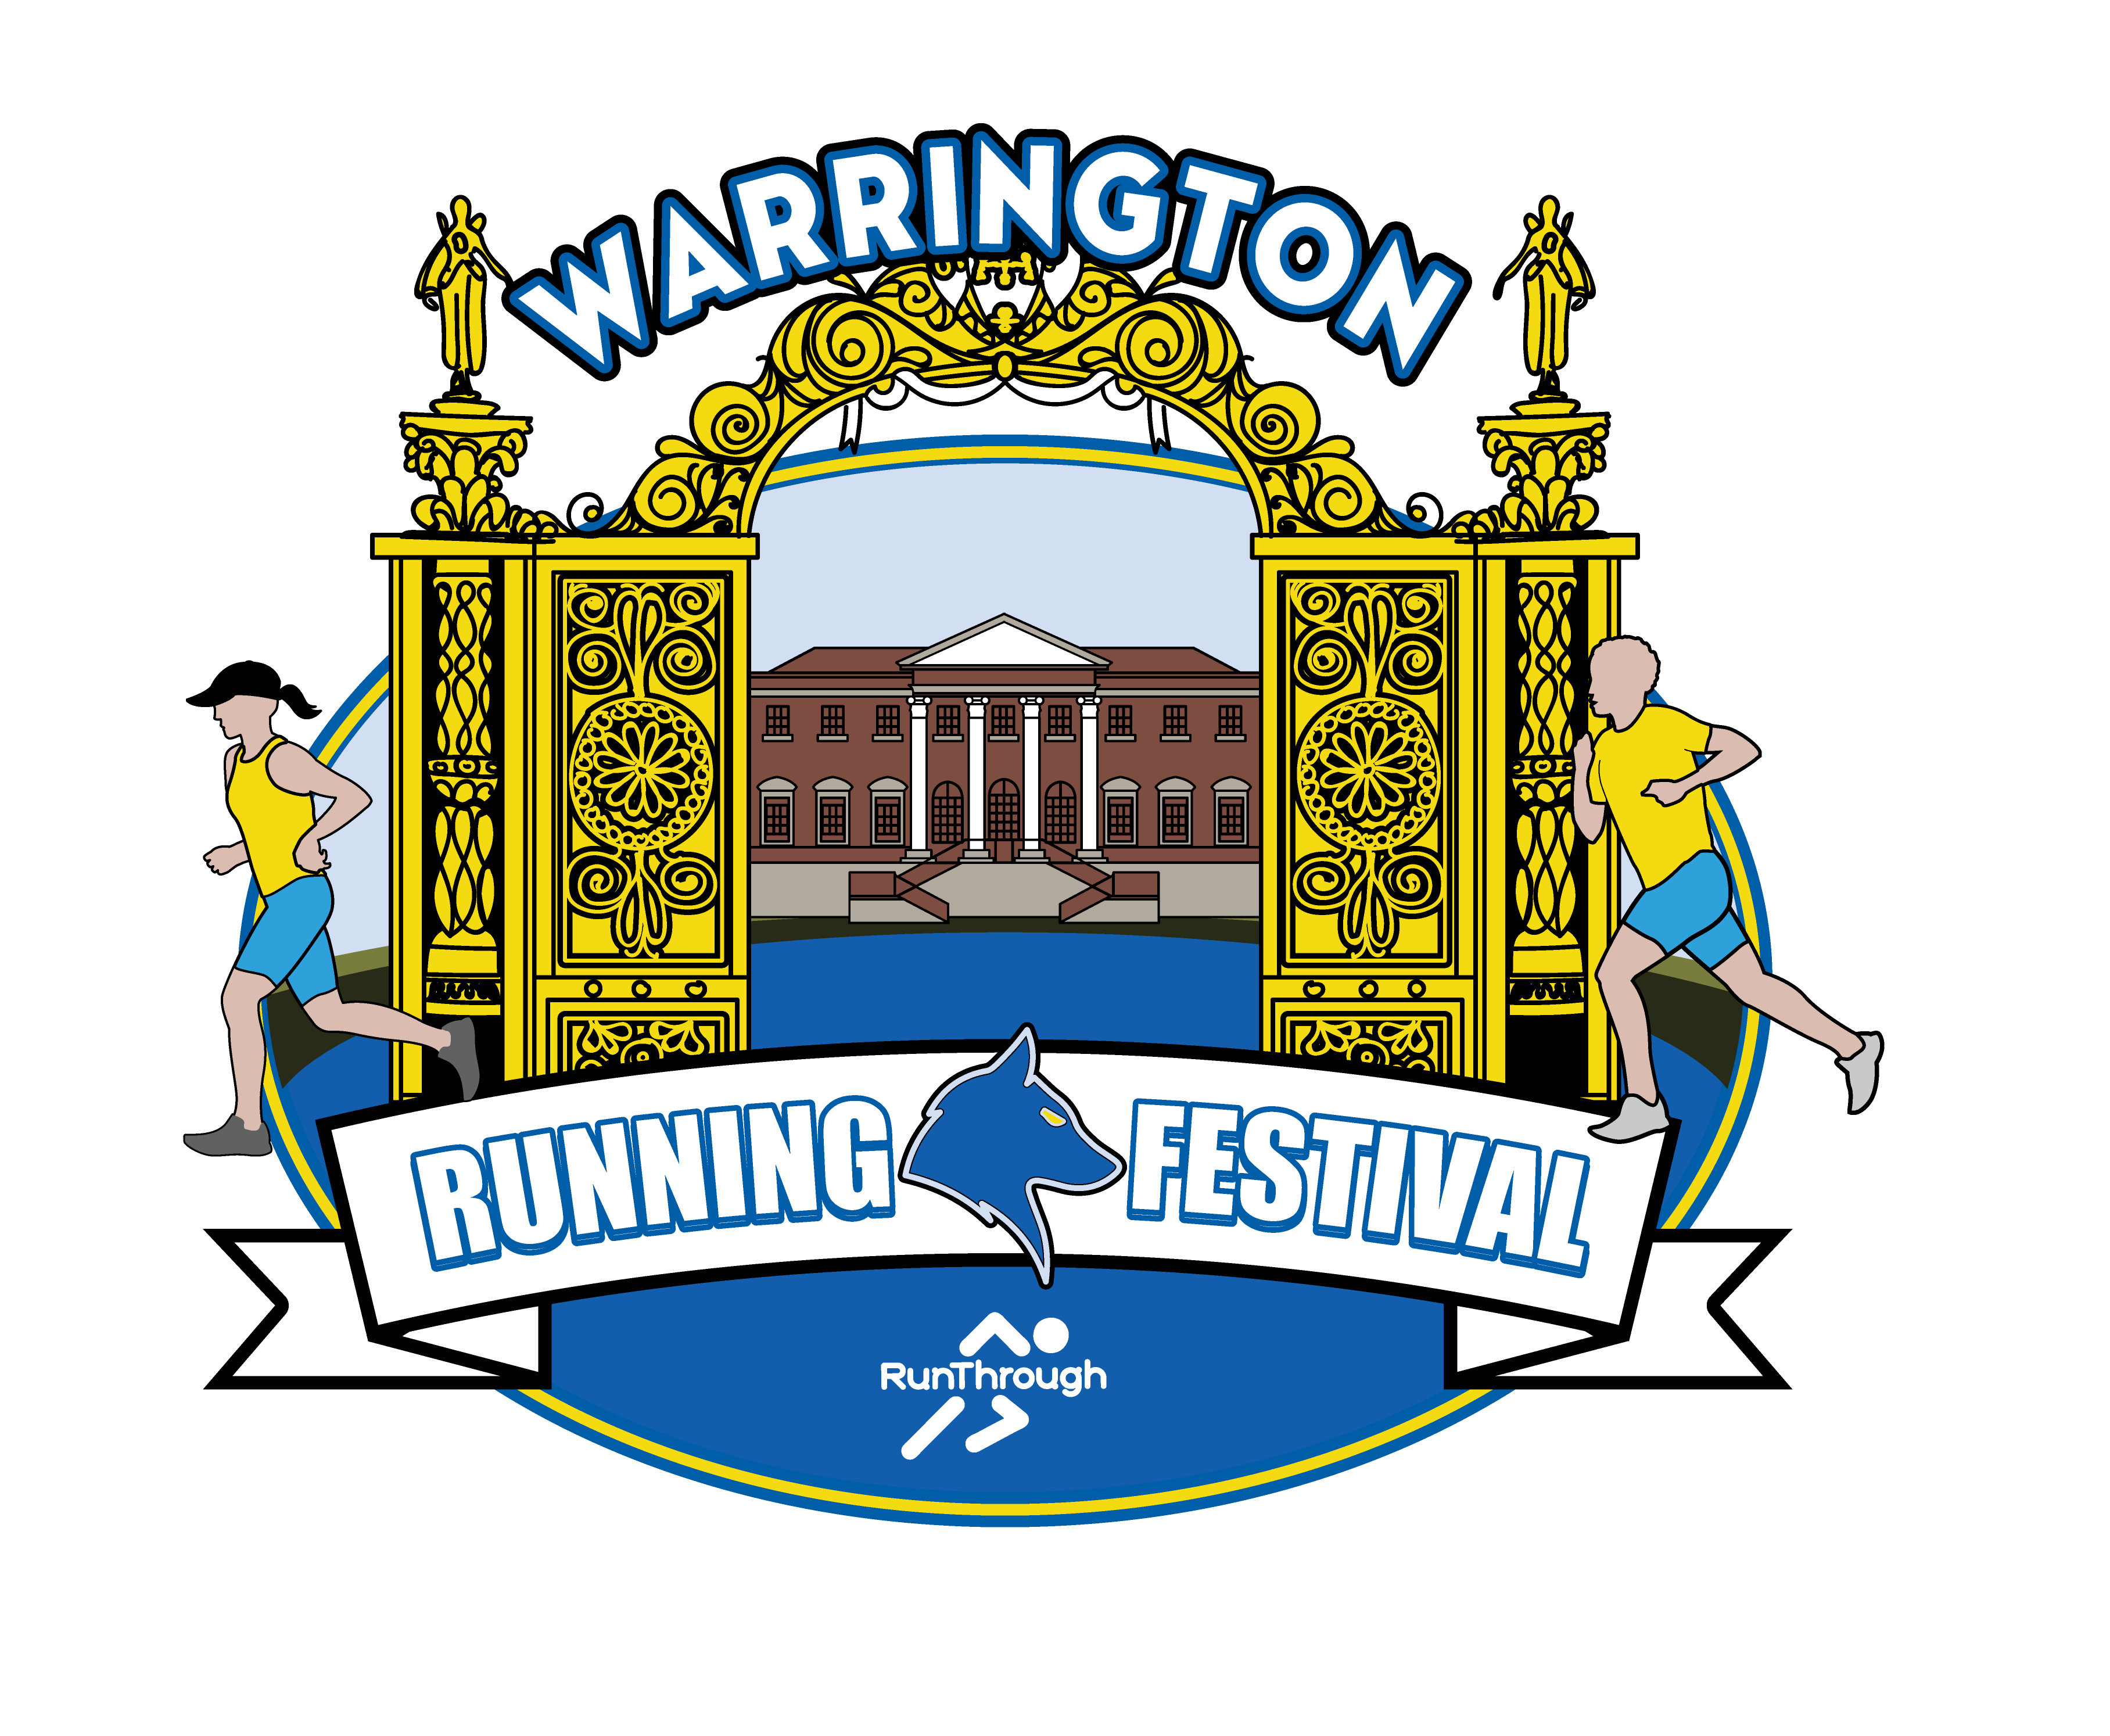 Warrington Running Festival